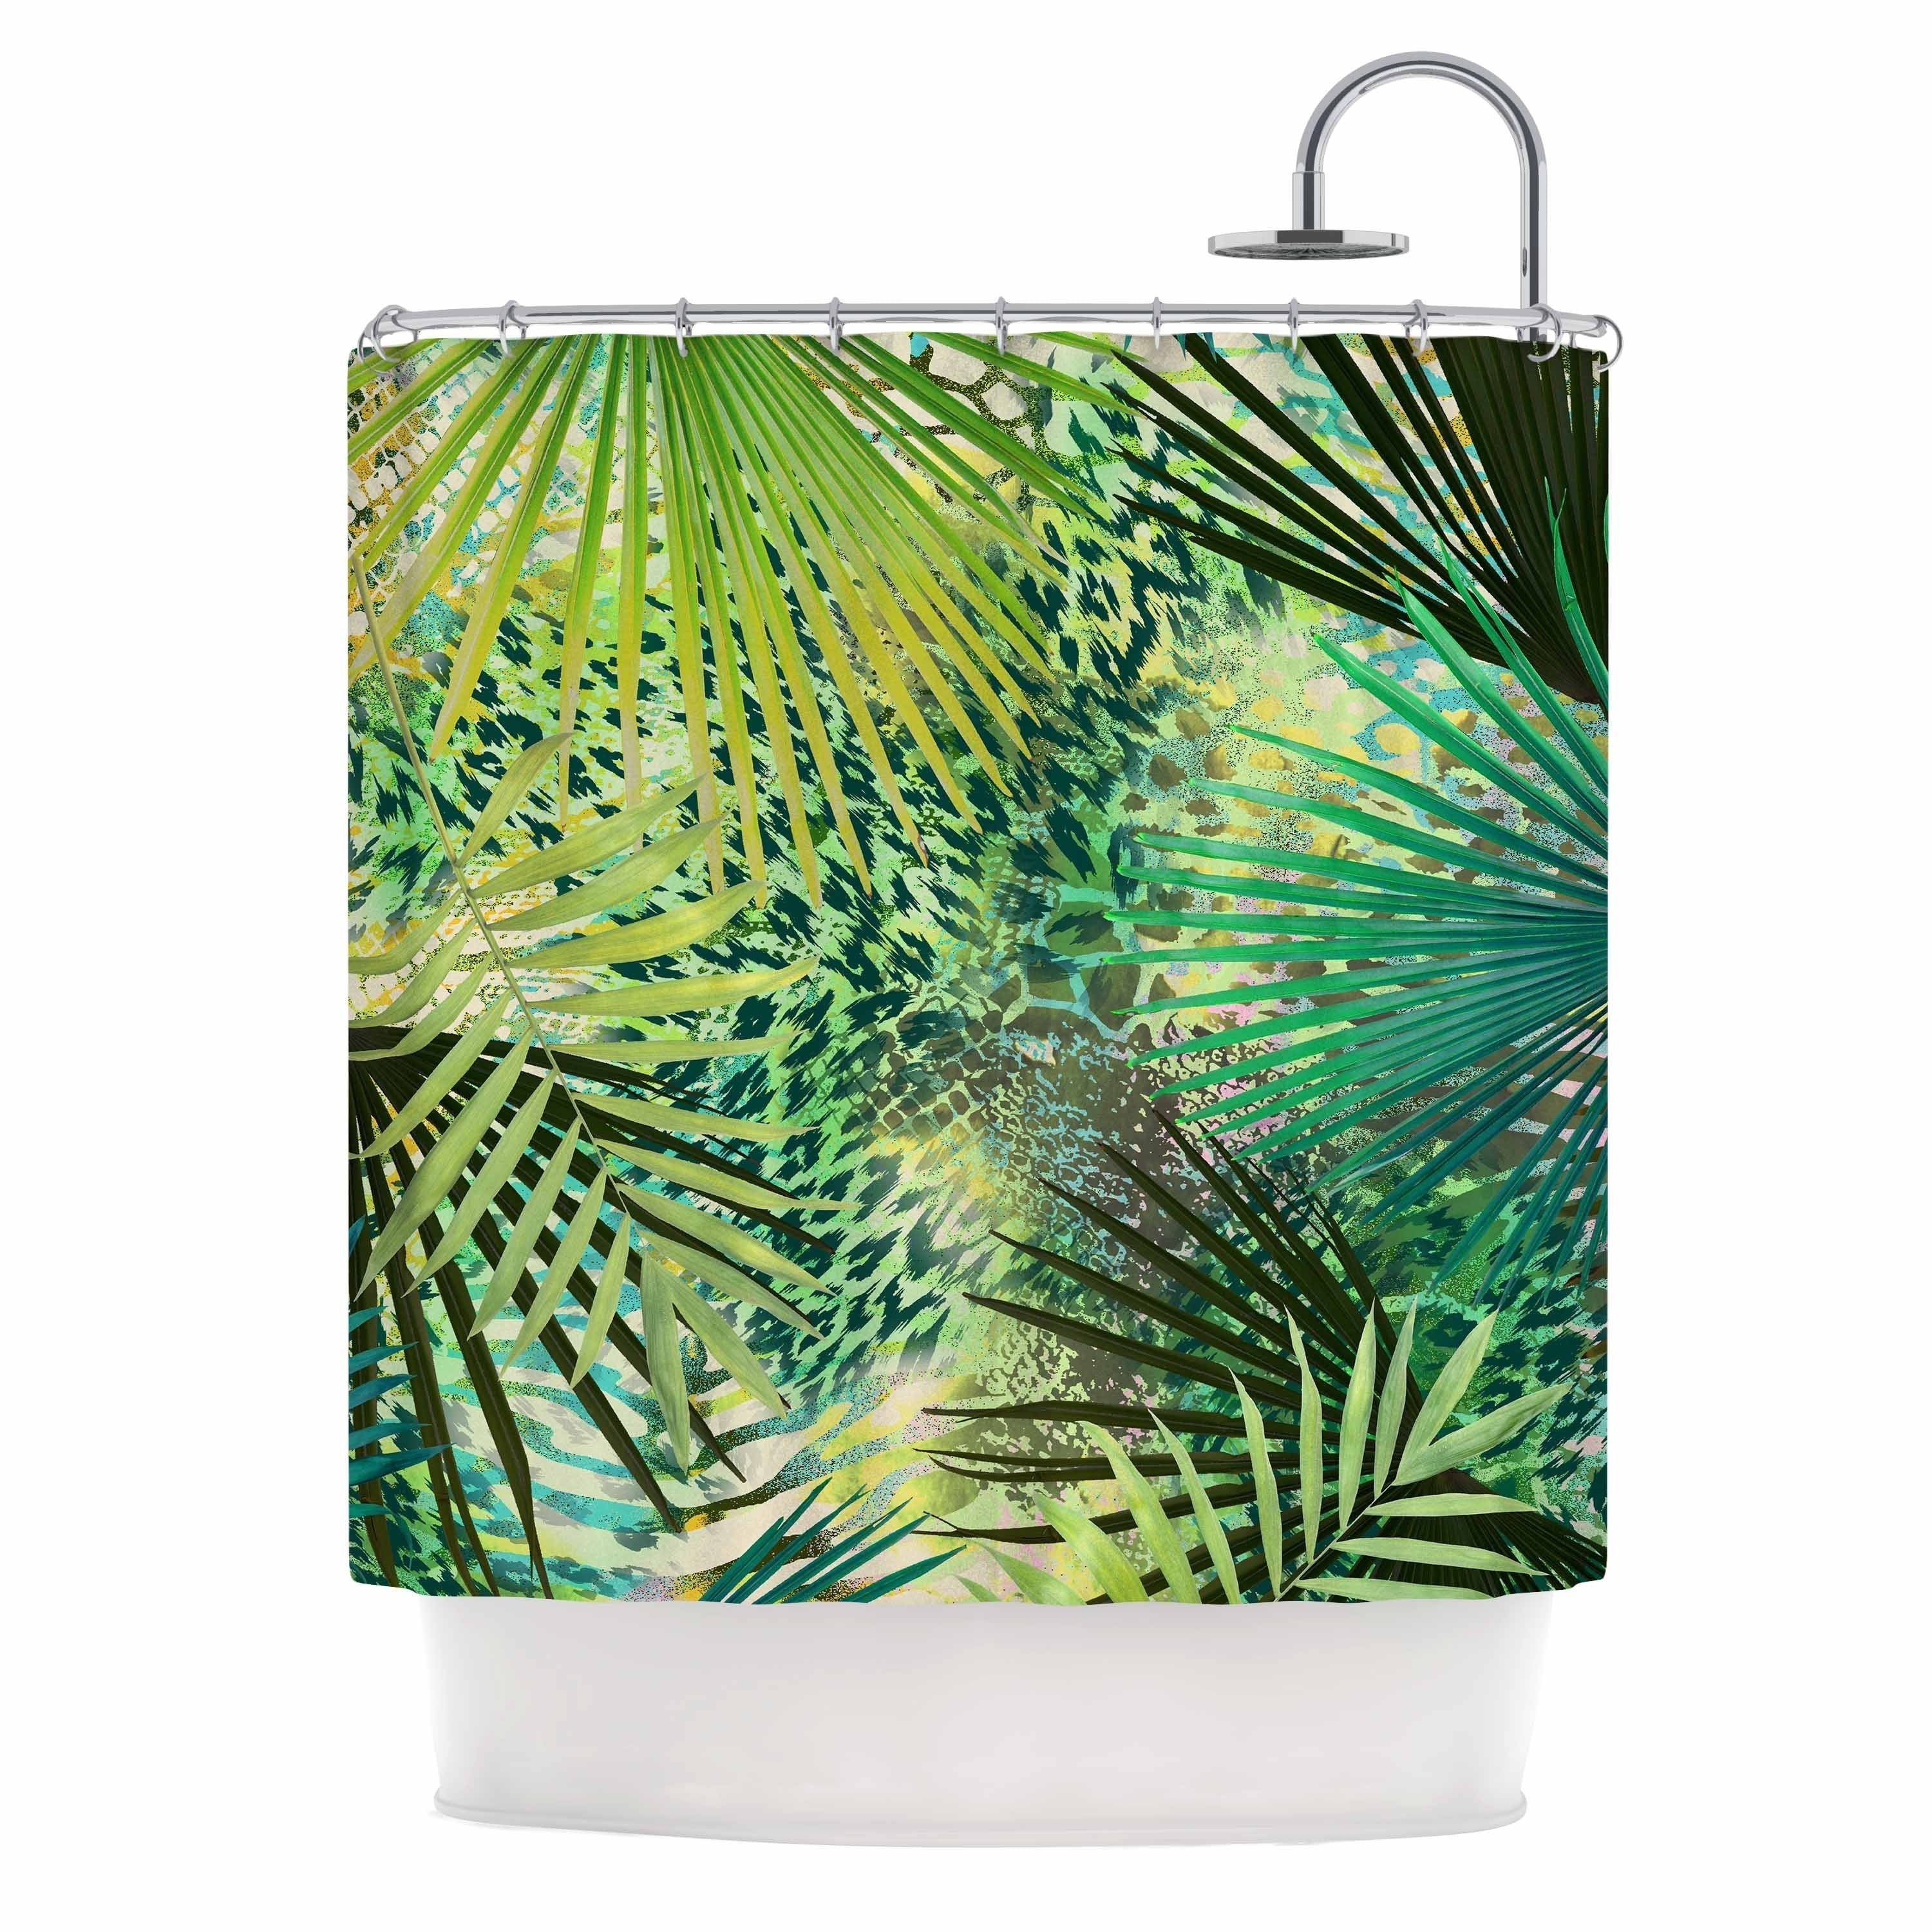 "Victoria Krupp "" Animal Jungles"" Green Teal Digital Shower Curtain Polyester - Diamond Home USA"